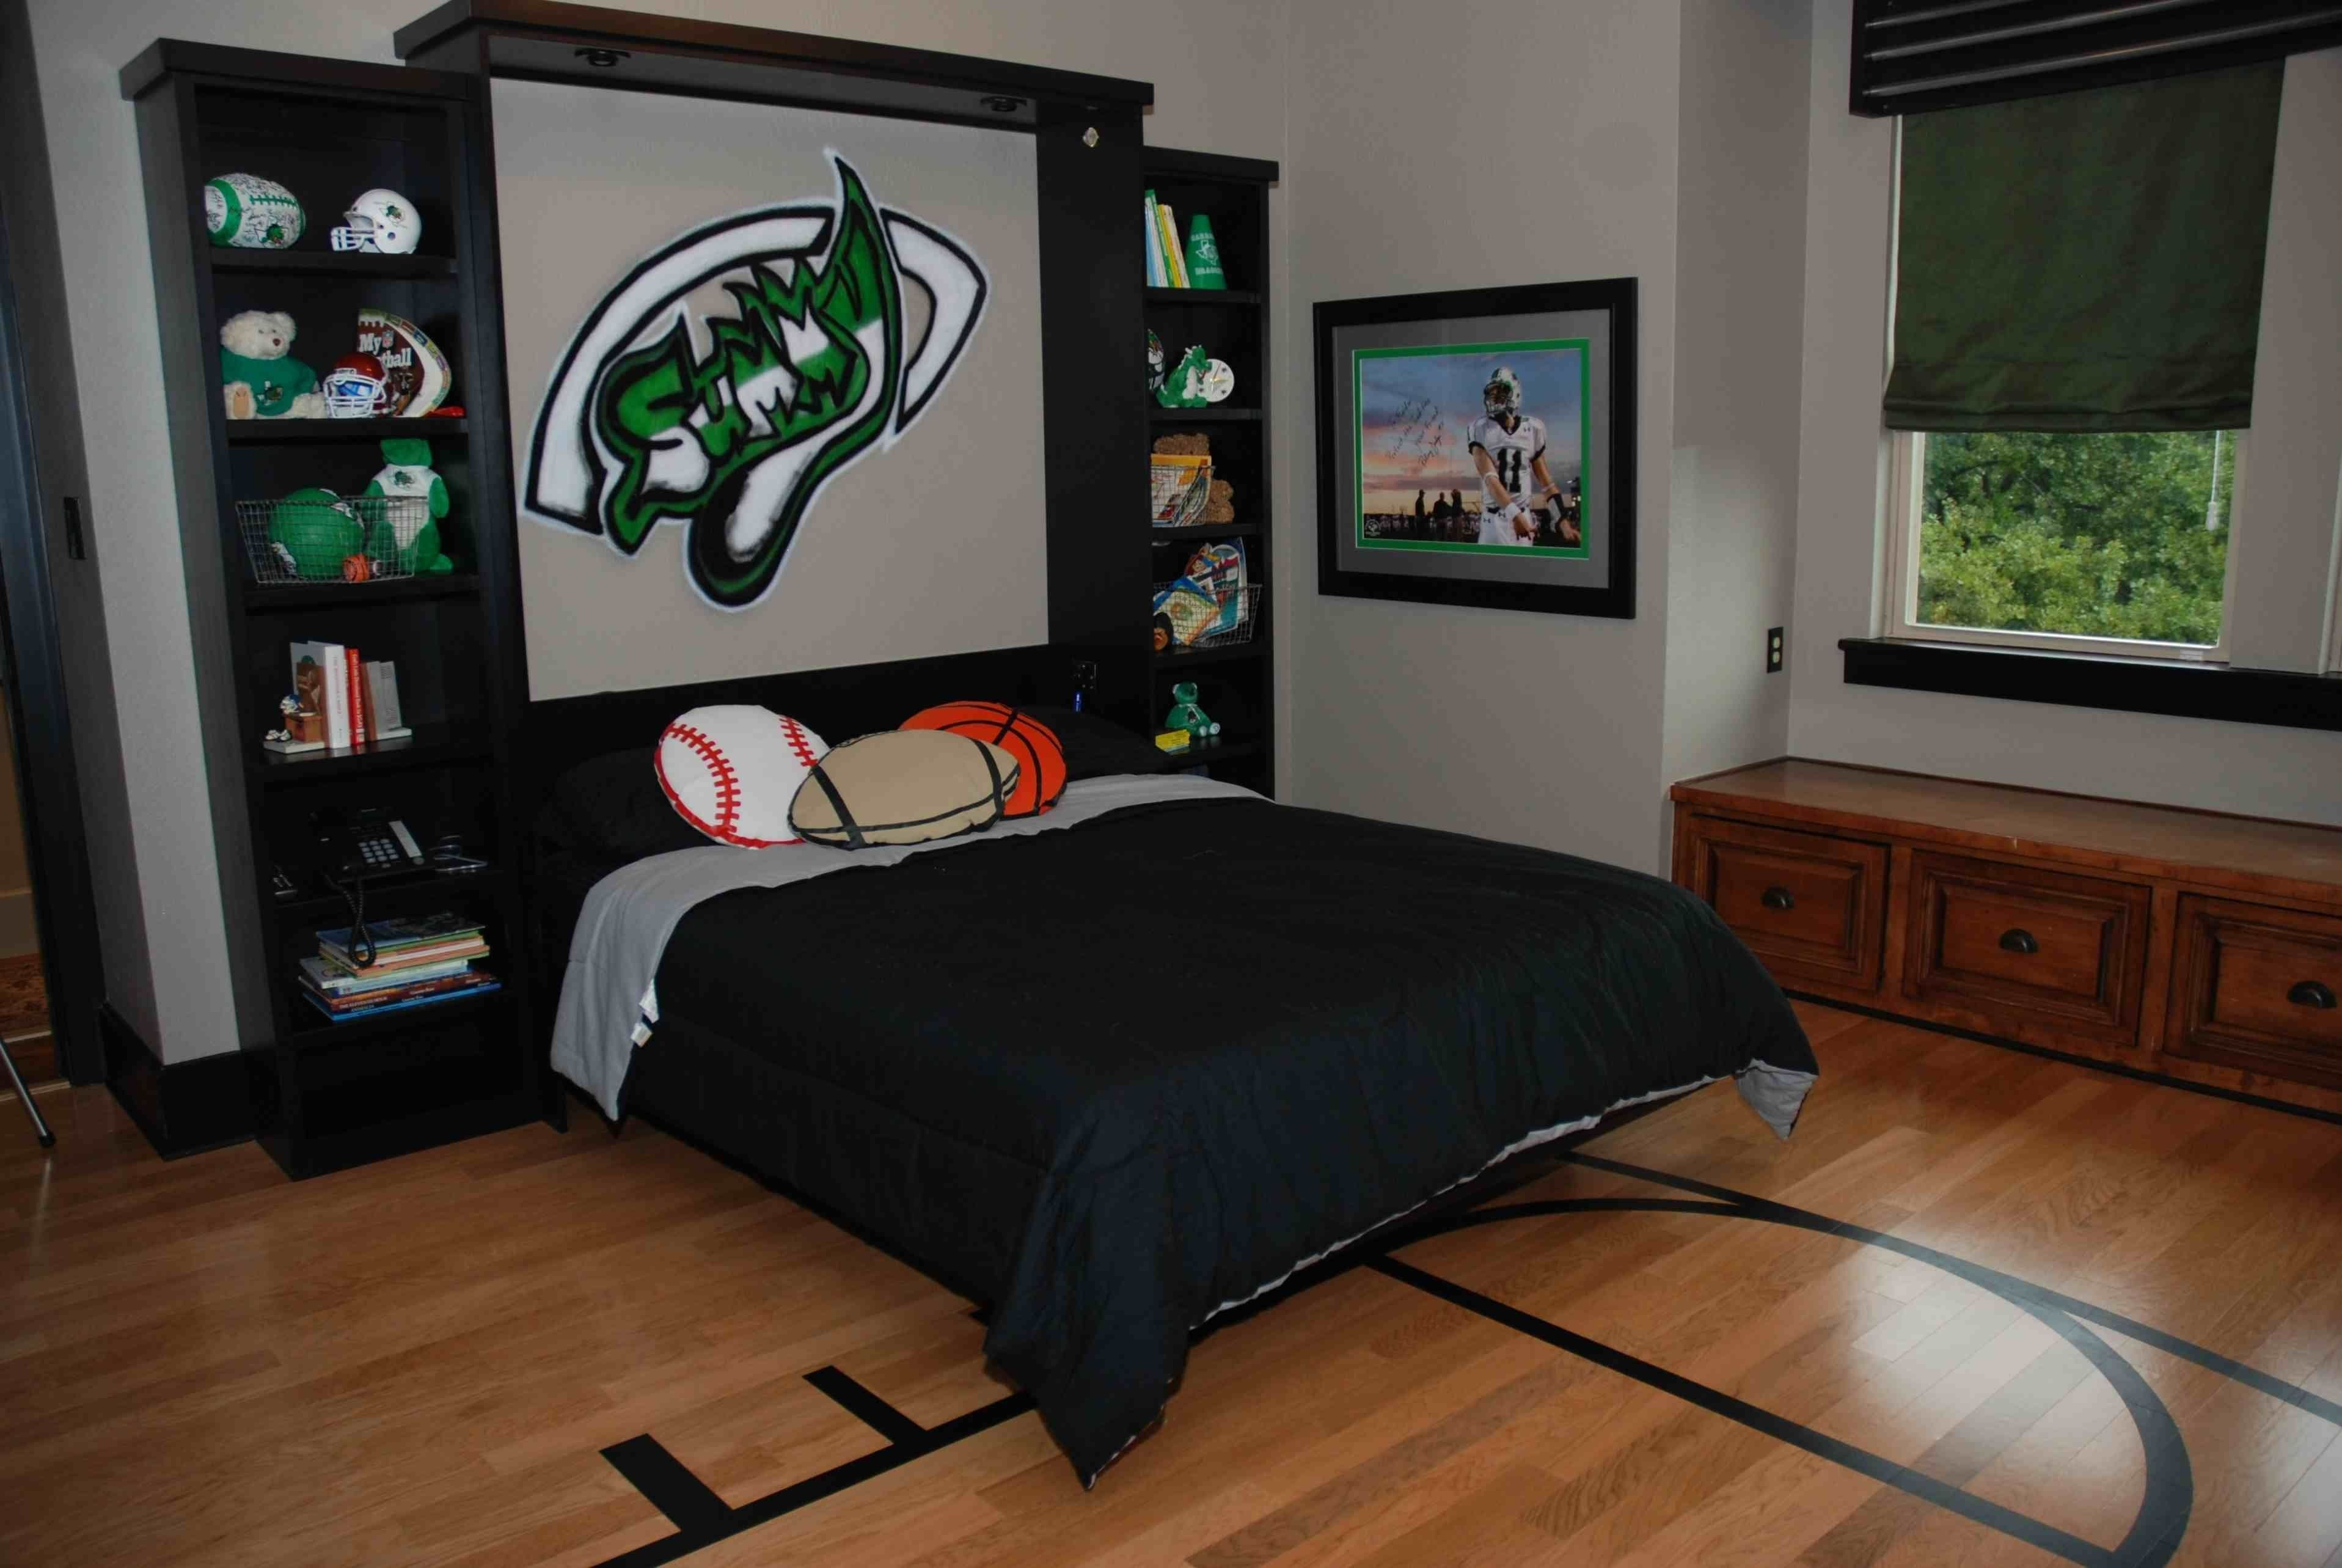 10 Great Room Design Ideas For Guys cool college bedroom ideas for guys bedroom design ideas for guys 2020